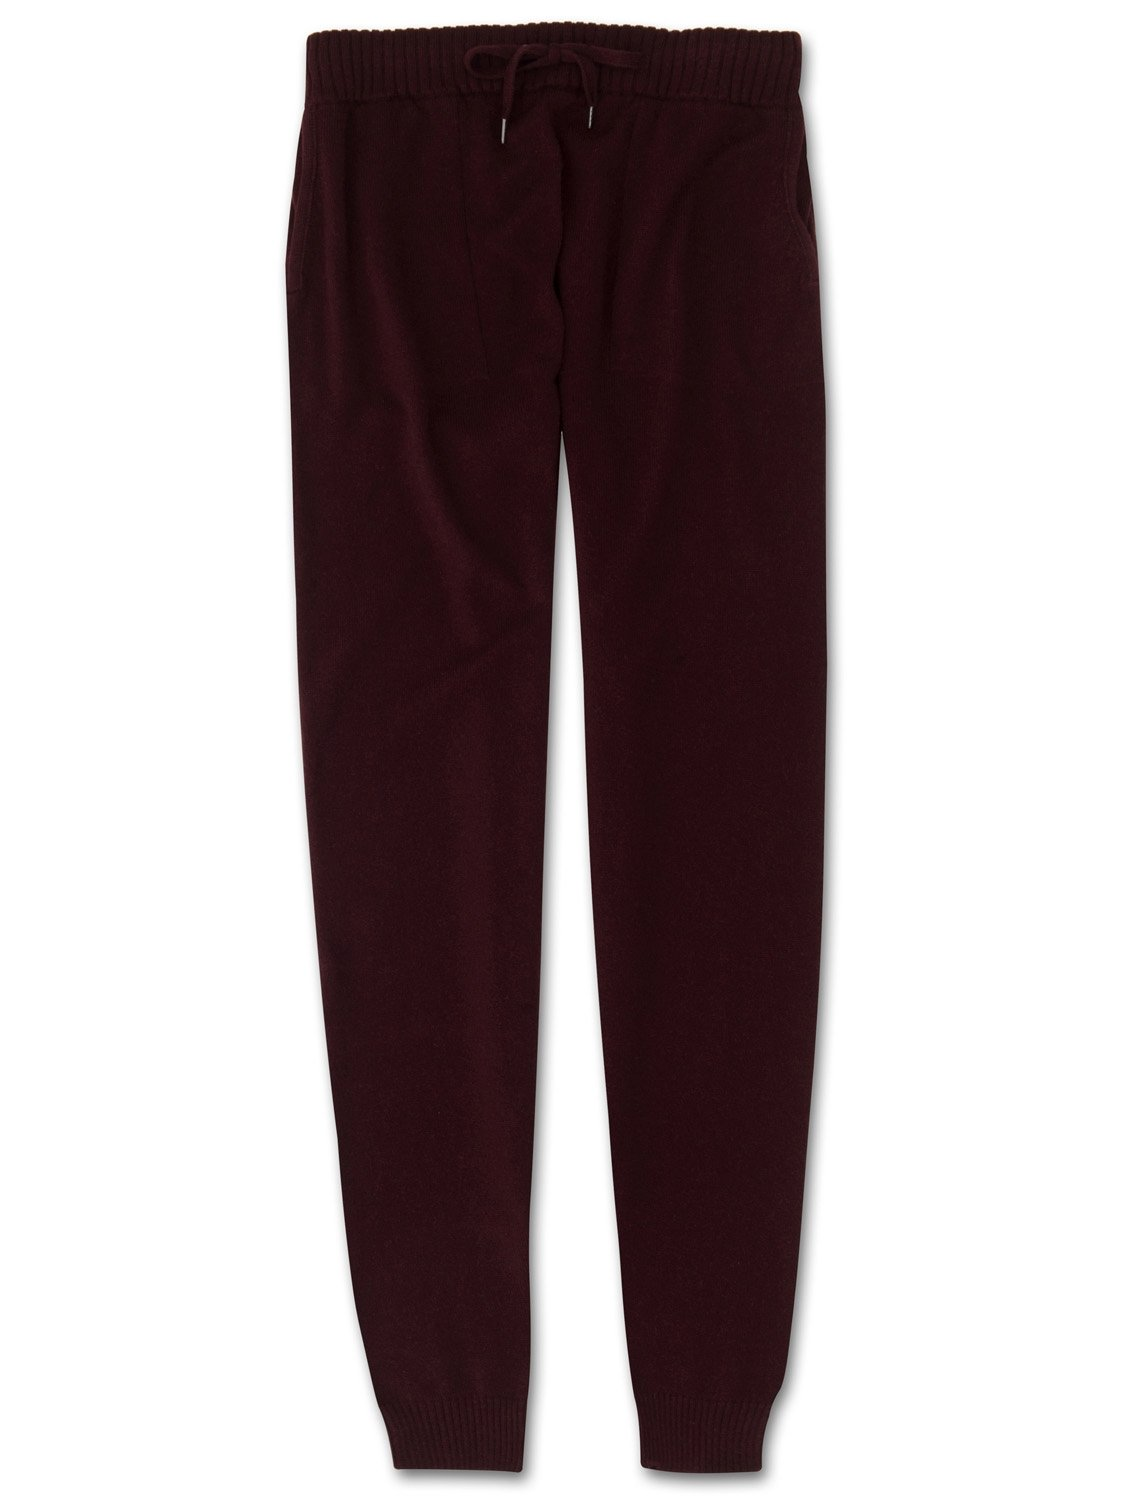 Women's Cashmere Track Pants Finley Pure Cashmere Burgundy